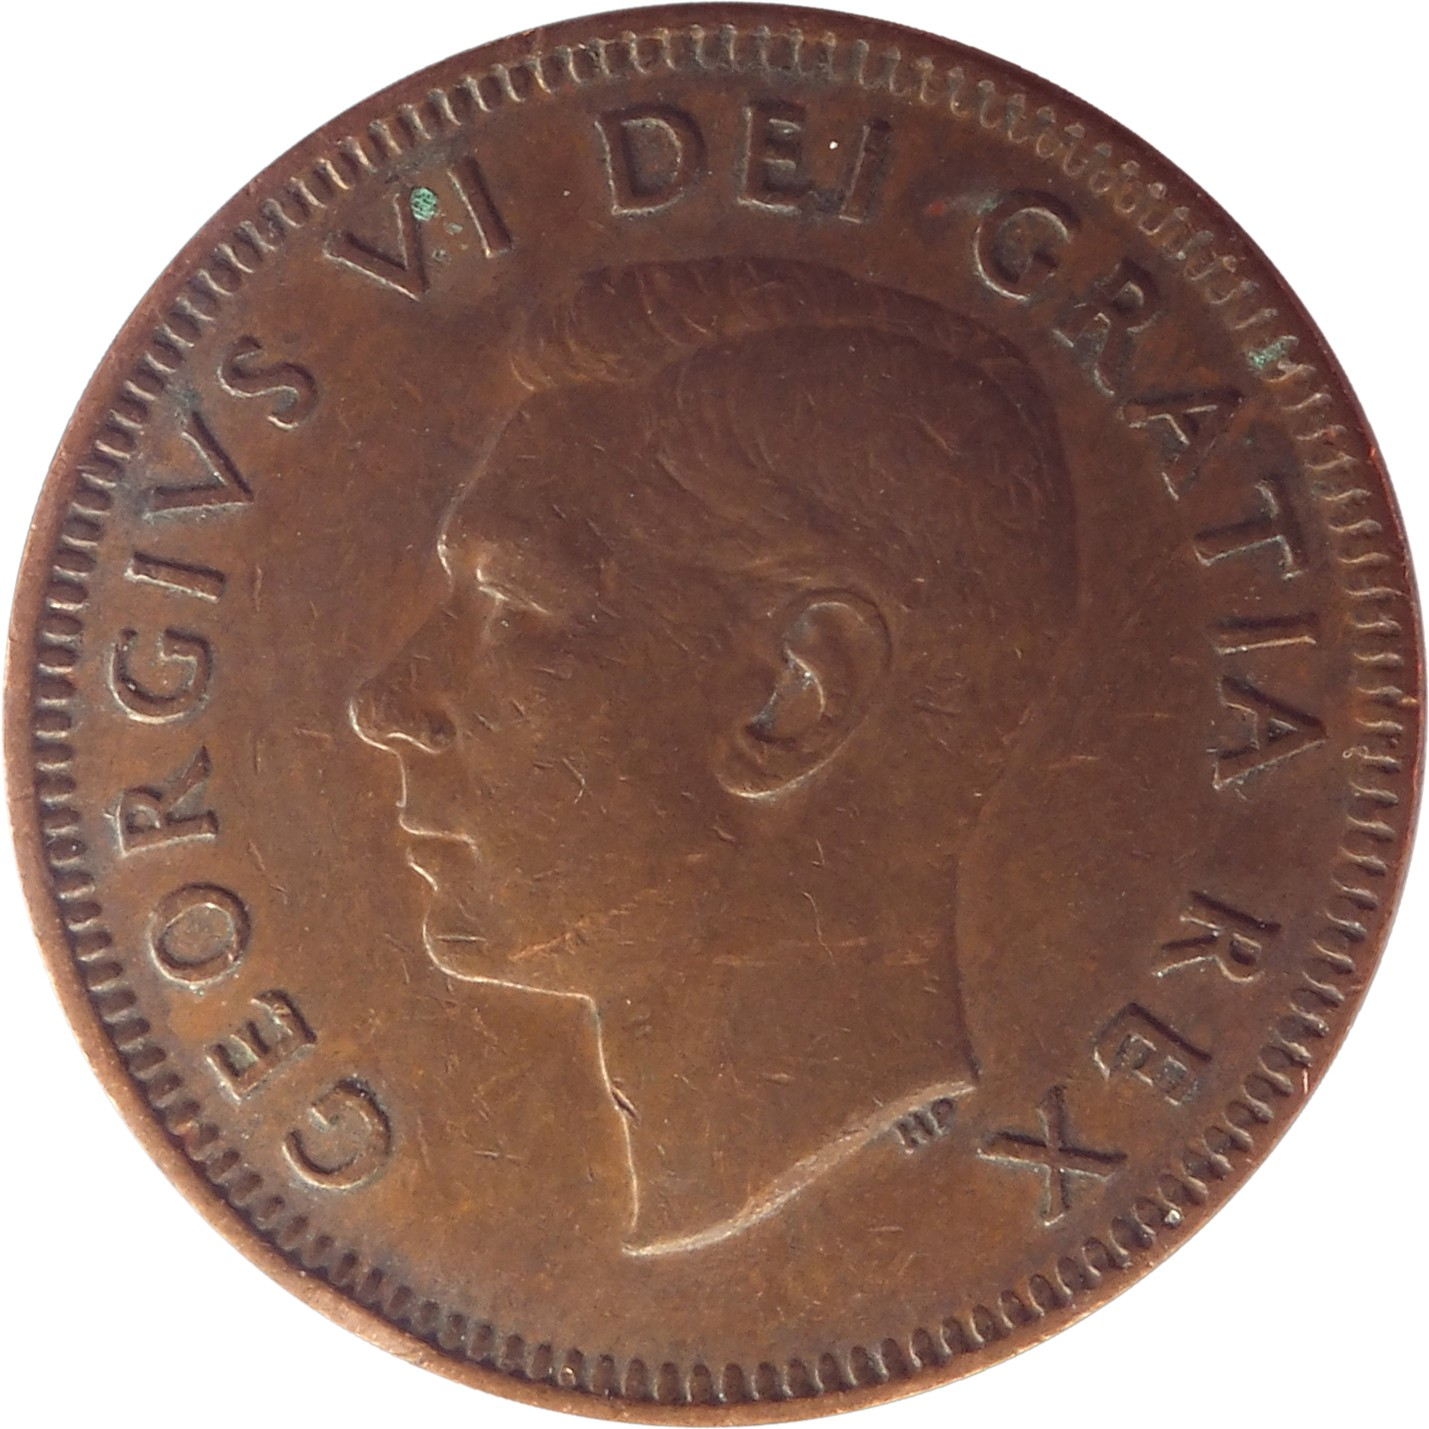 1 Cent George Vi Without Ind Imp 1948 1952 Canada Km 41 Coinsbook